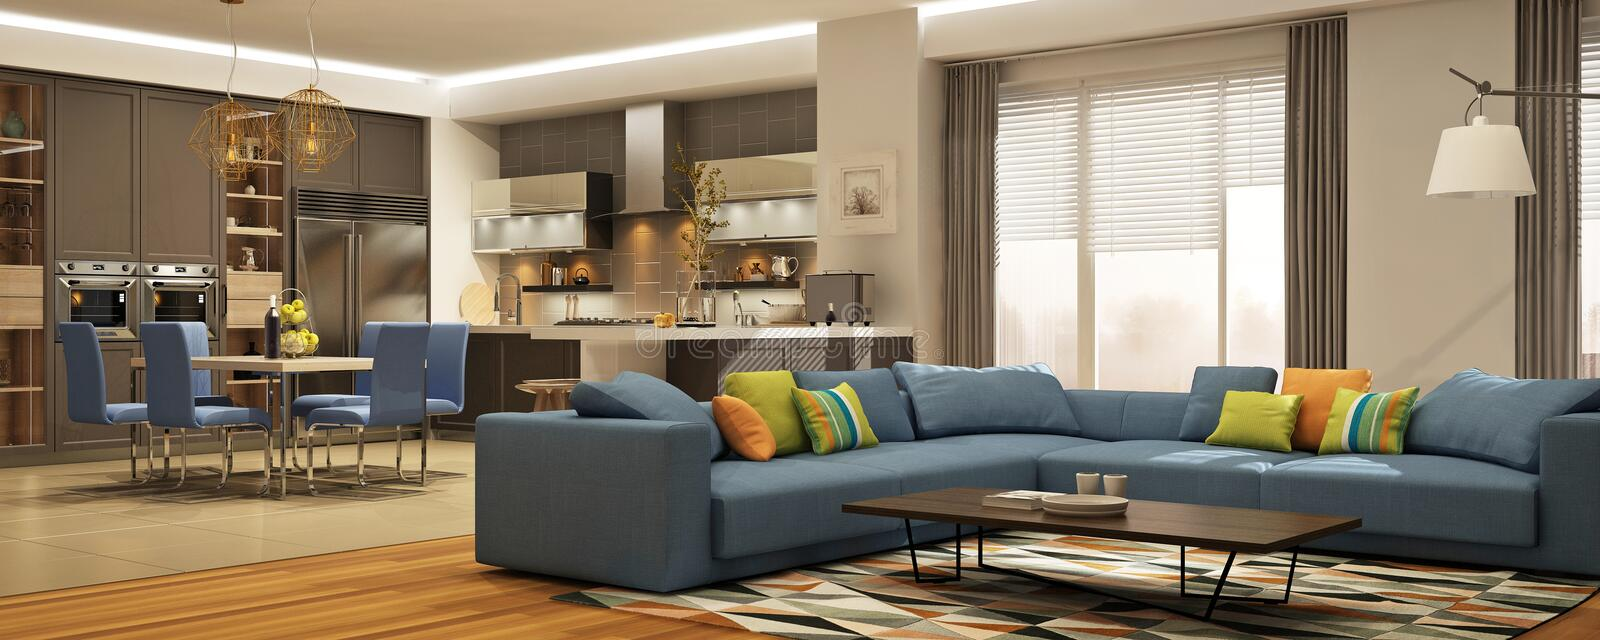 Modern interior of living room united with kitchen in scandinavian style stock photography